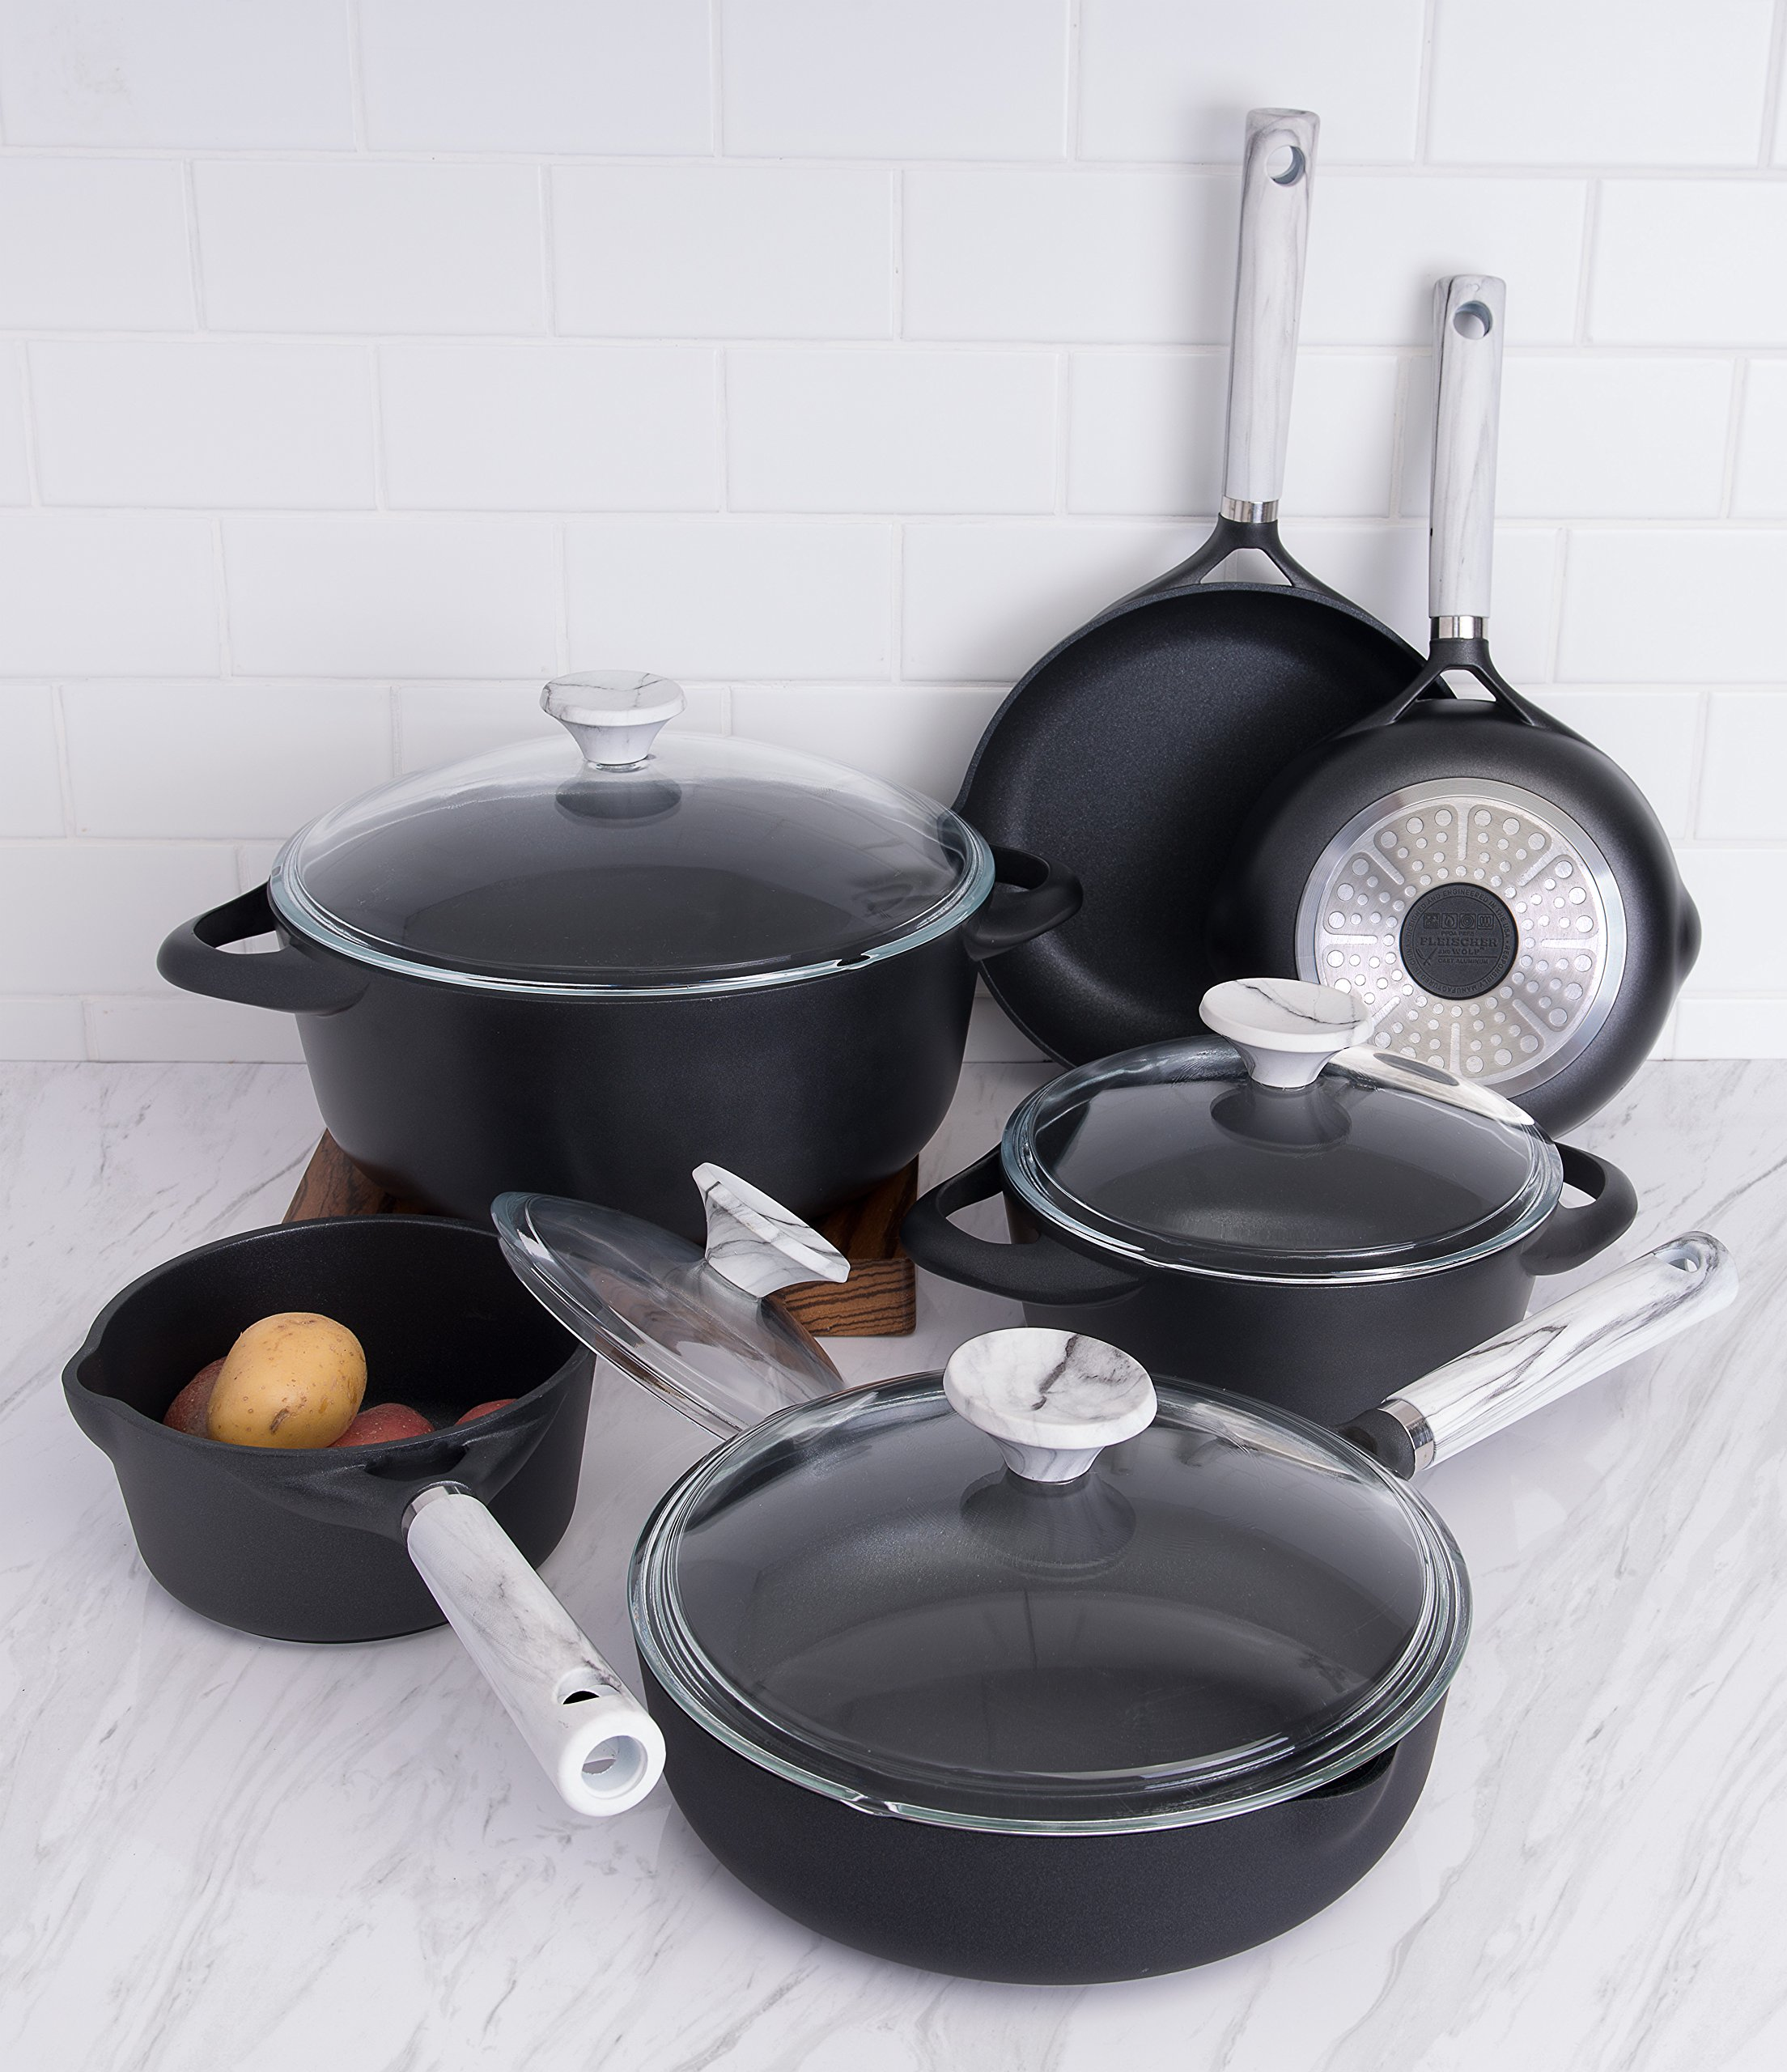 Fleischer & Wolf Athens Series cookware set(10-Piece) - Non-stick Coating in Black Color- Oven and Grill Safe Kitchen Pots and Pans Set--Perfect Christmas Gift